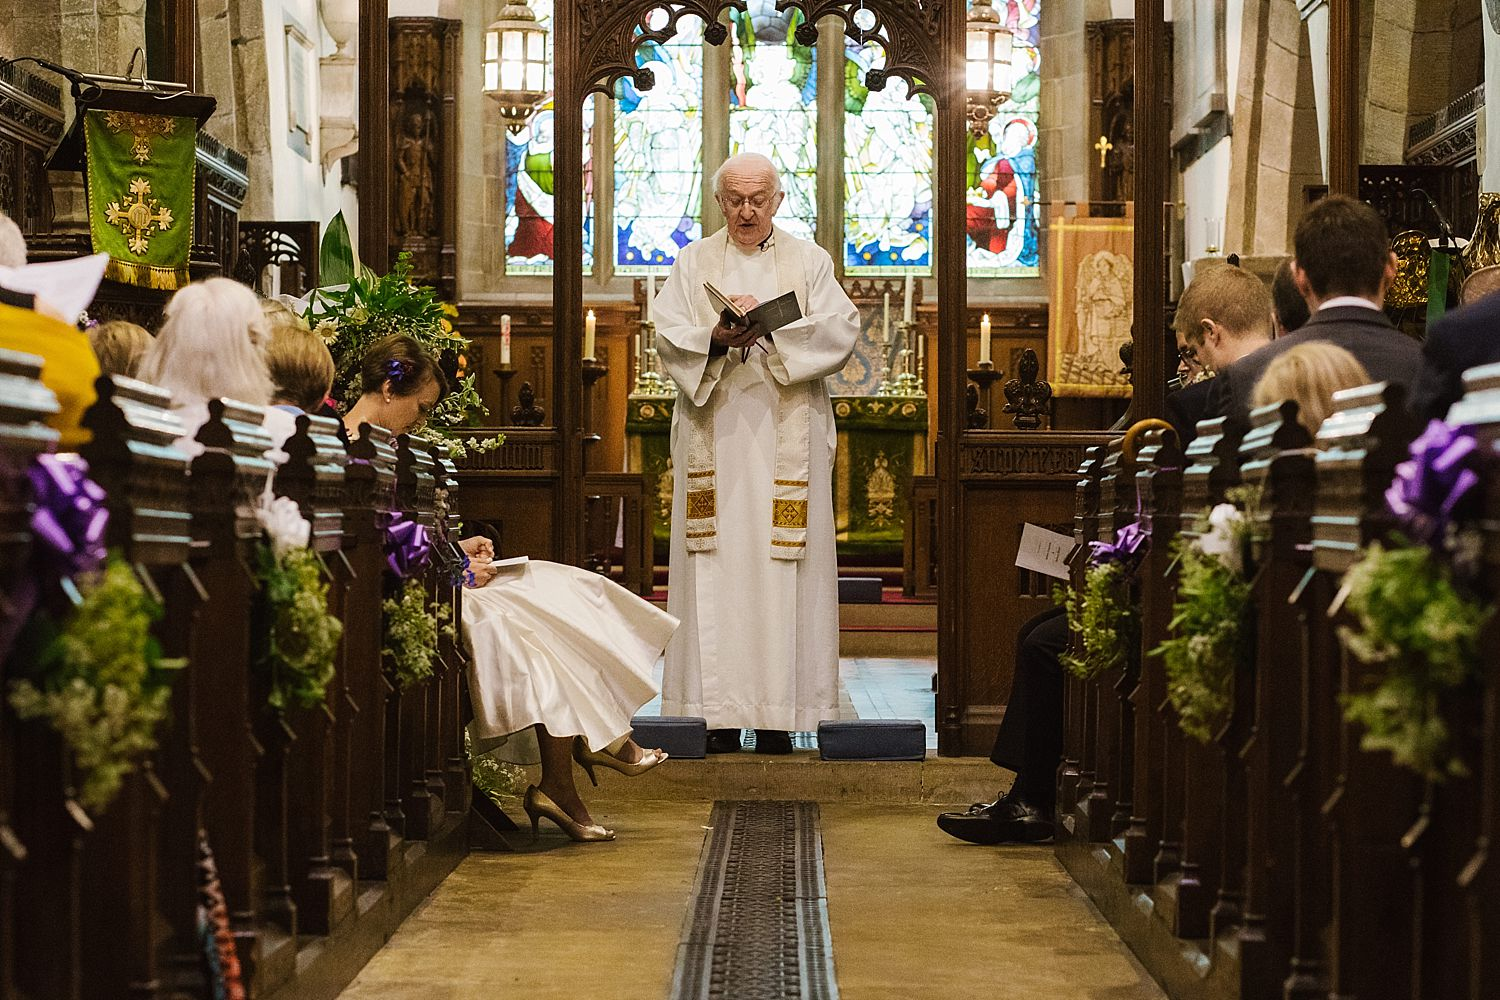 Vicar presides over ceremony in church at Park House Barn wedding